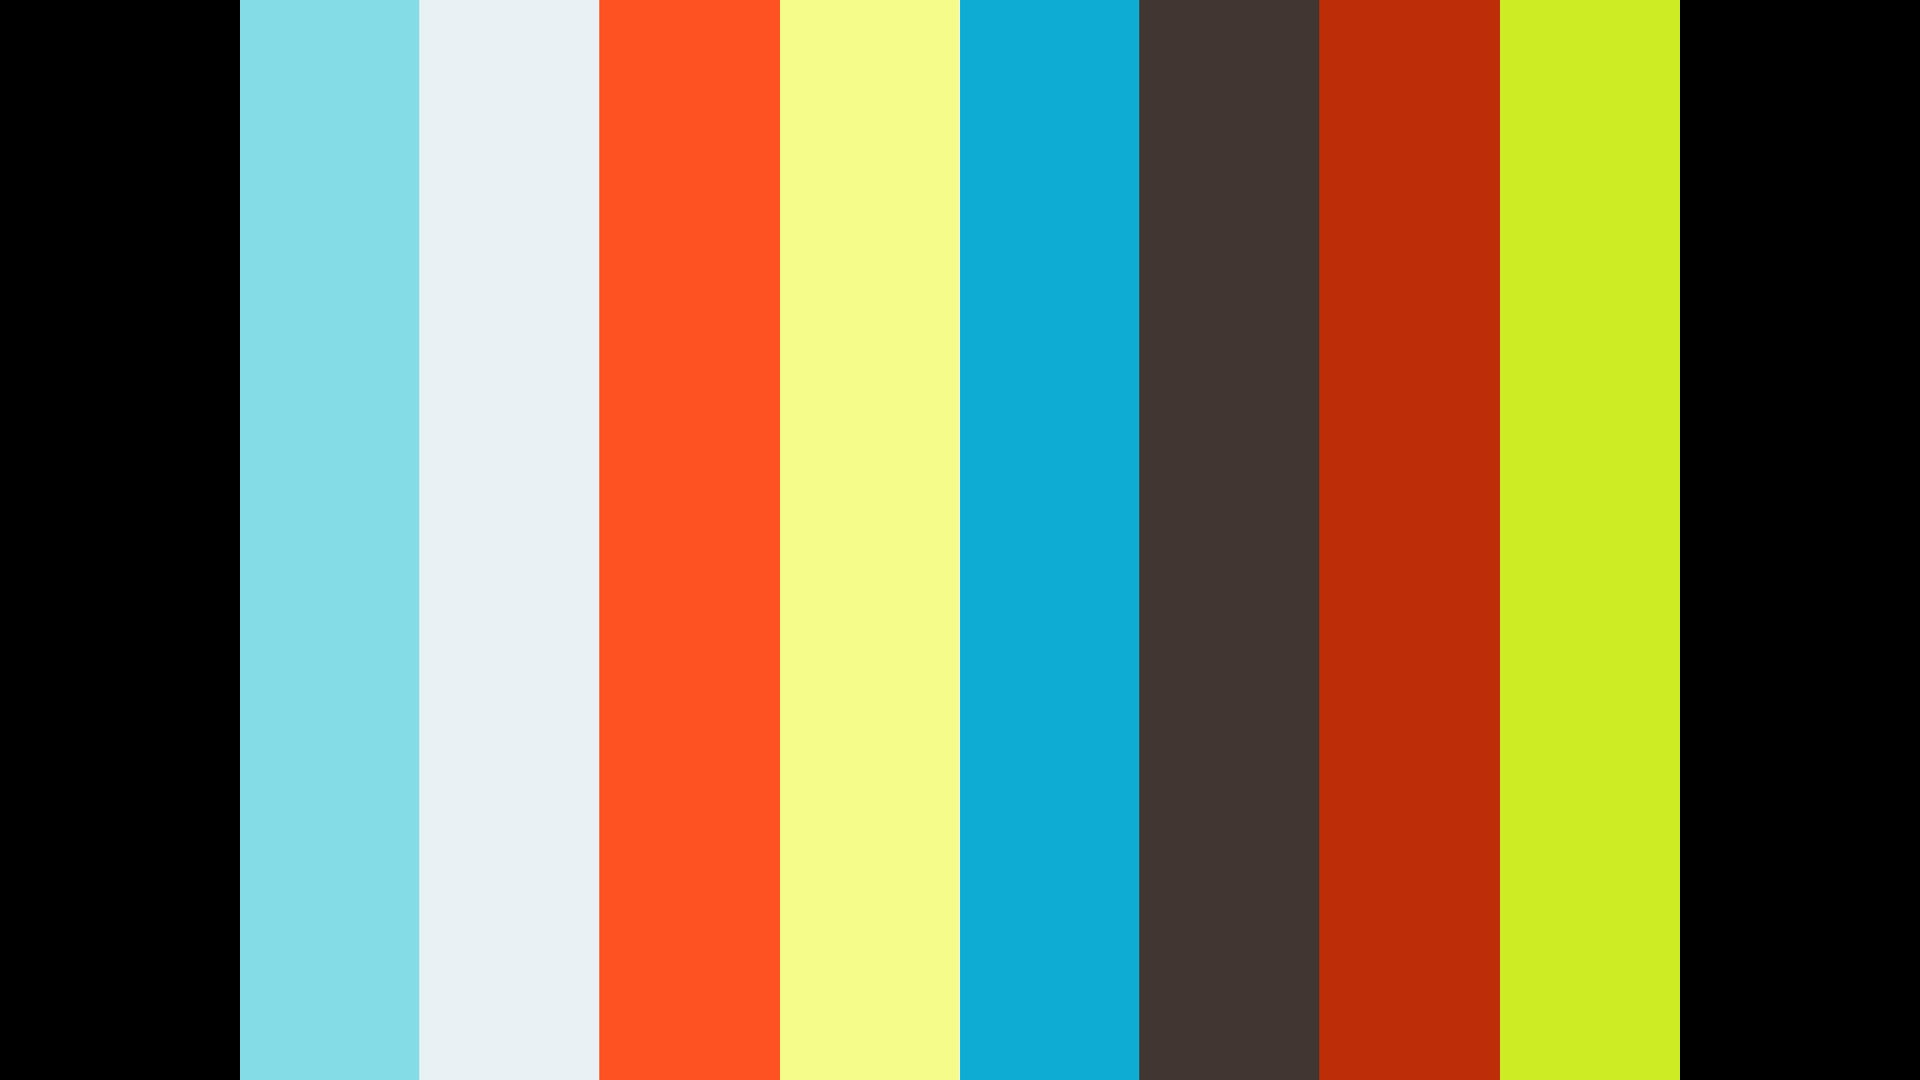 The 2012 IIFA International Indian Film Academy Awards